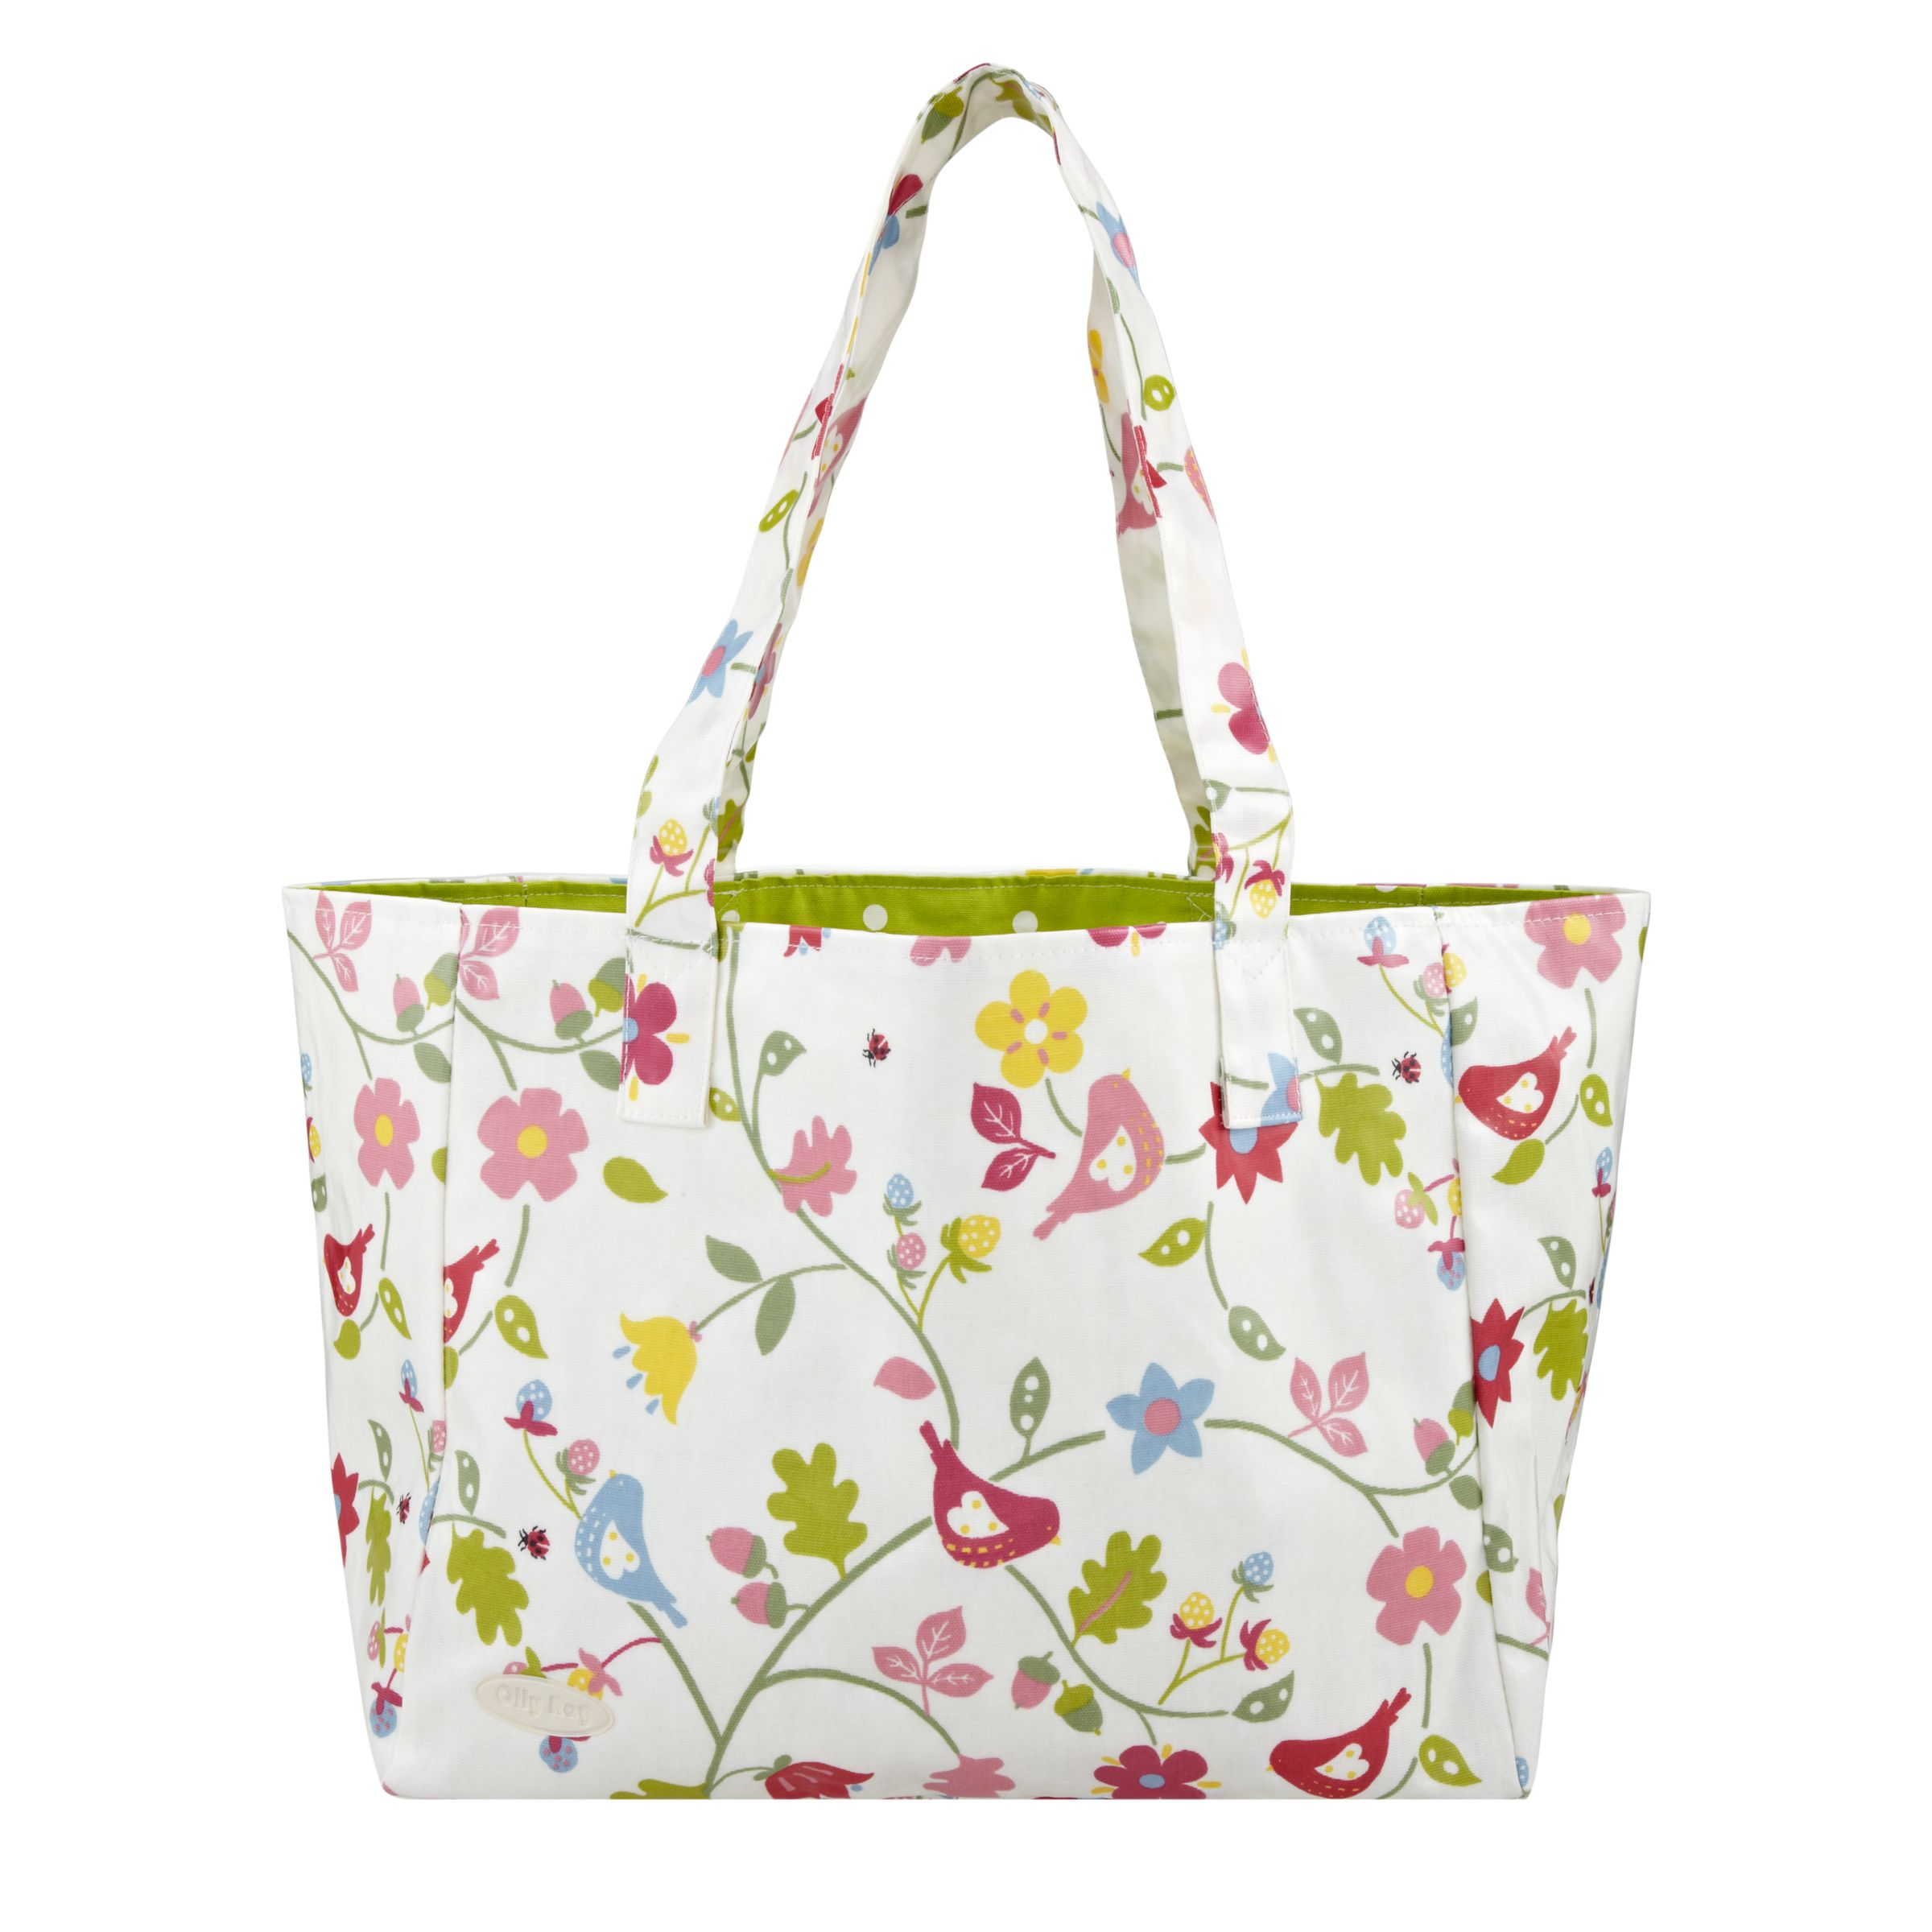 Oily Rag Songbird Everyday Bag